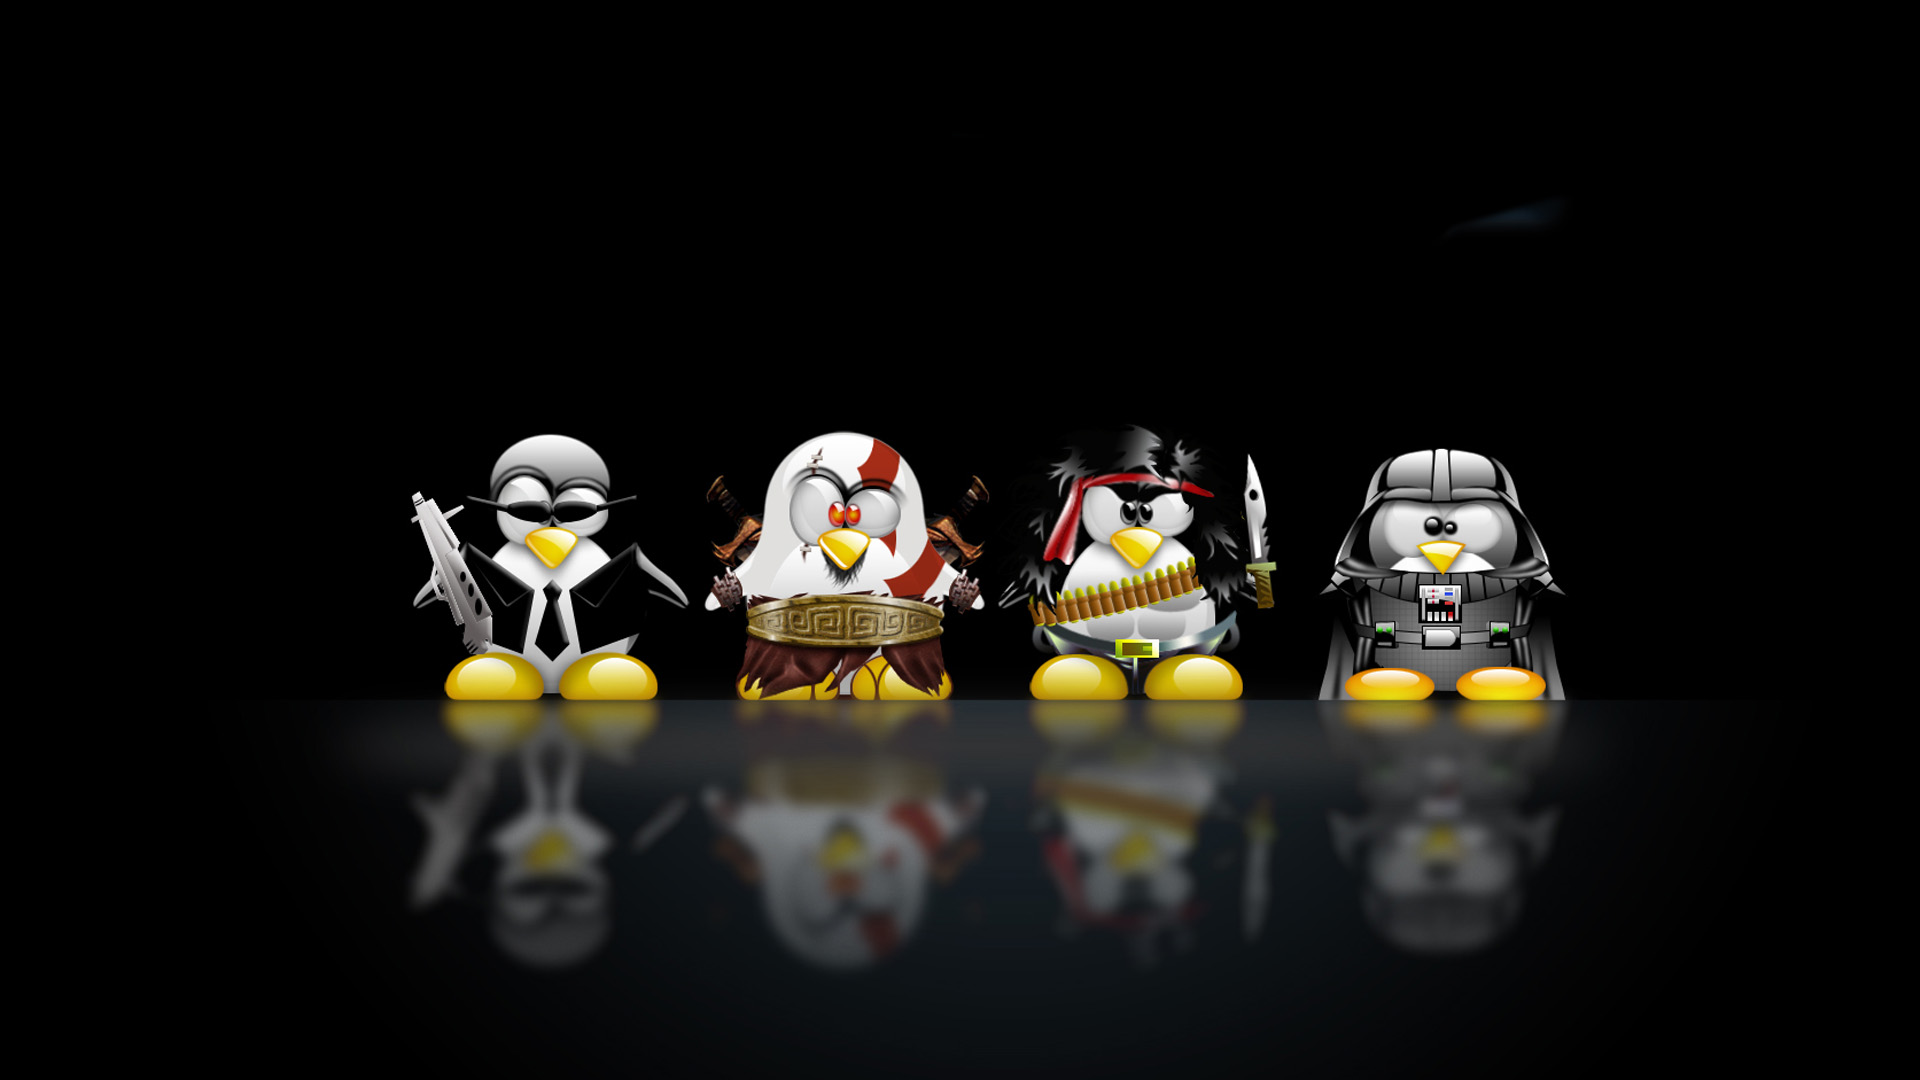 Linux wallpapers 1 1920x1080